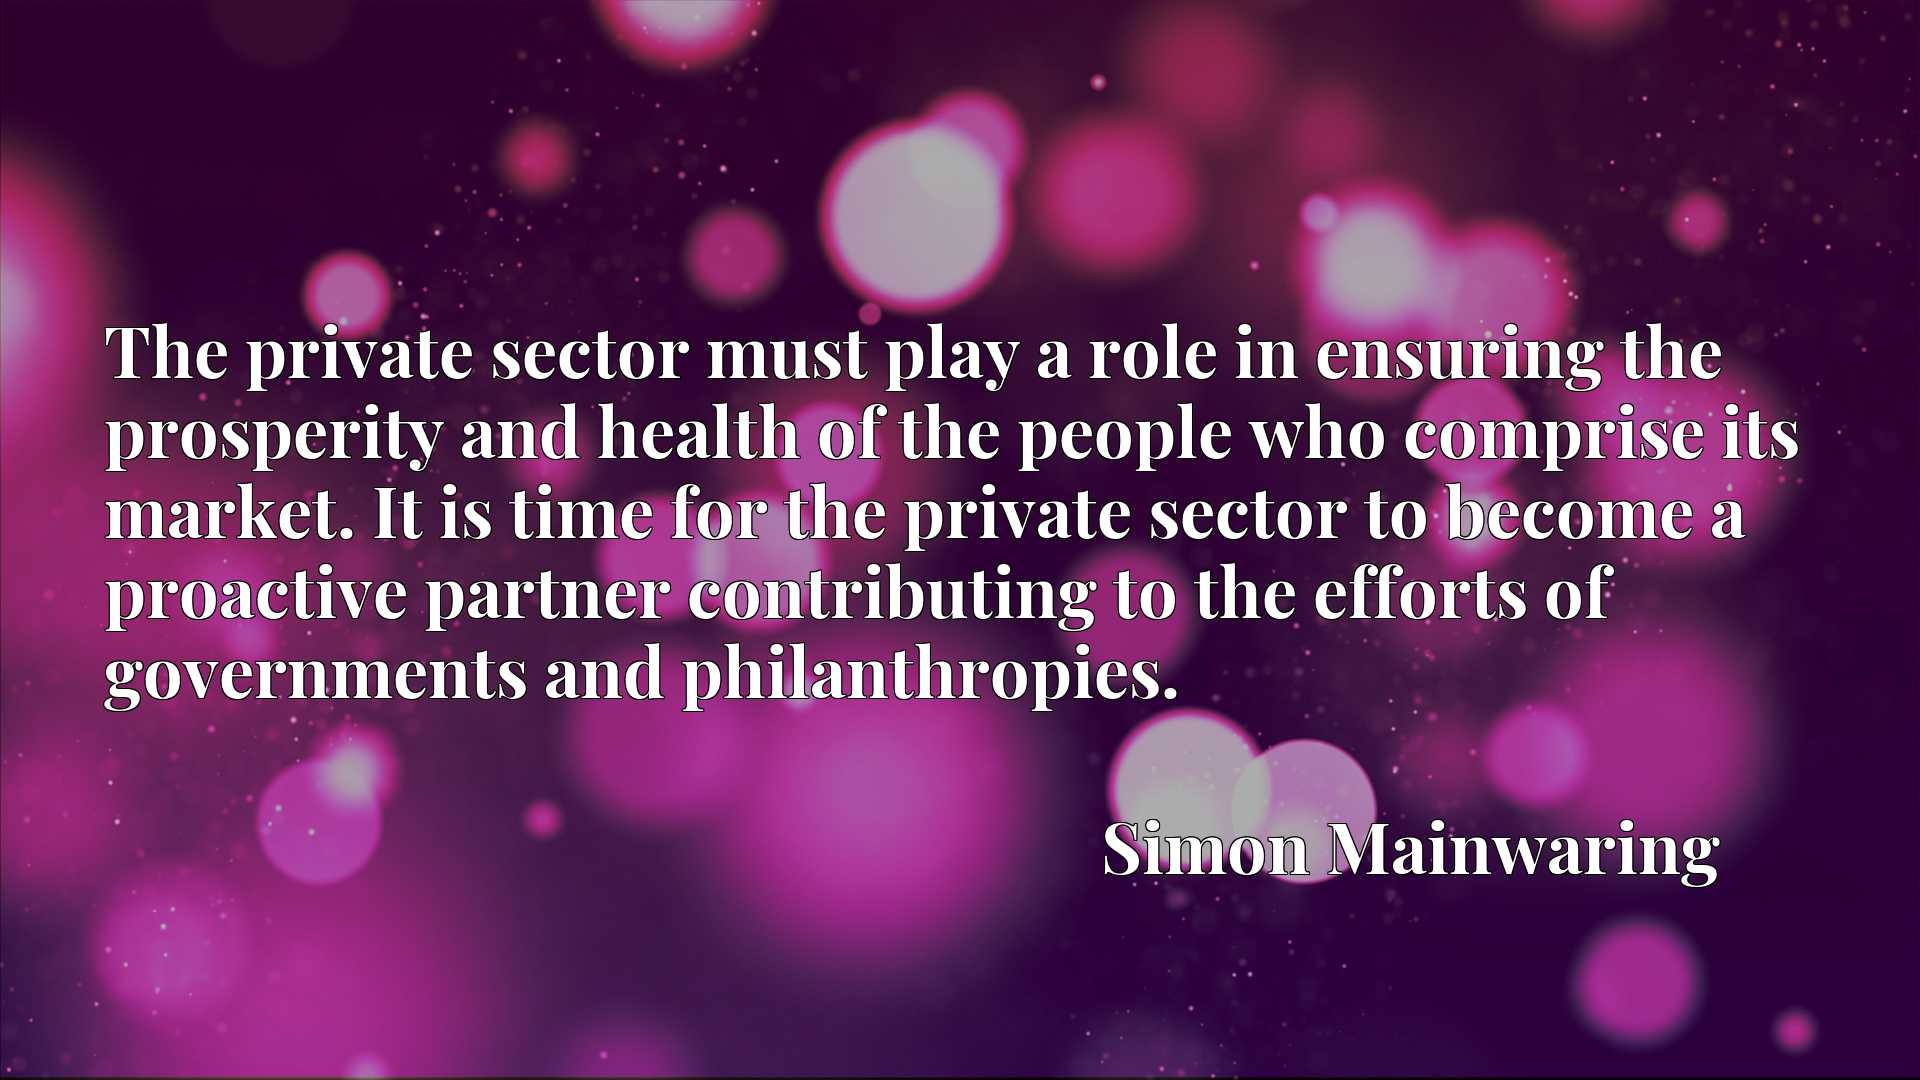 The private sector must play a role in ensuring the prosperity and health of the people who comprise its market. It is time for the private sector to become a proactive partner contributing to the efforts of governments and philanthropies.